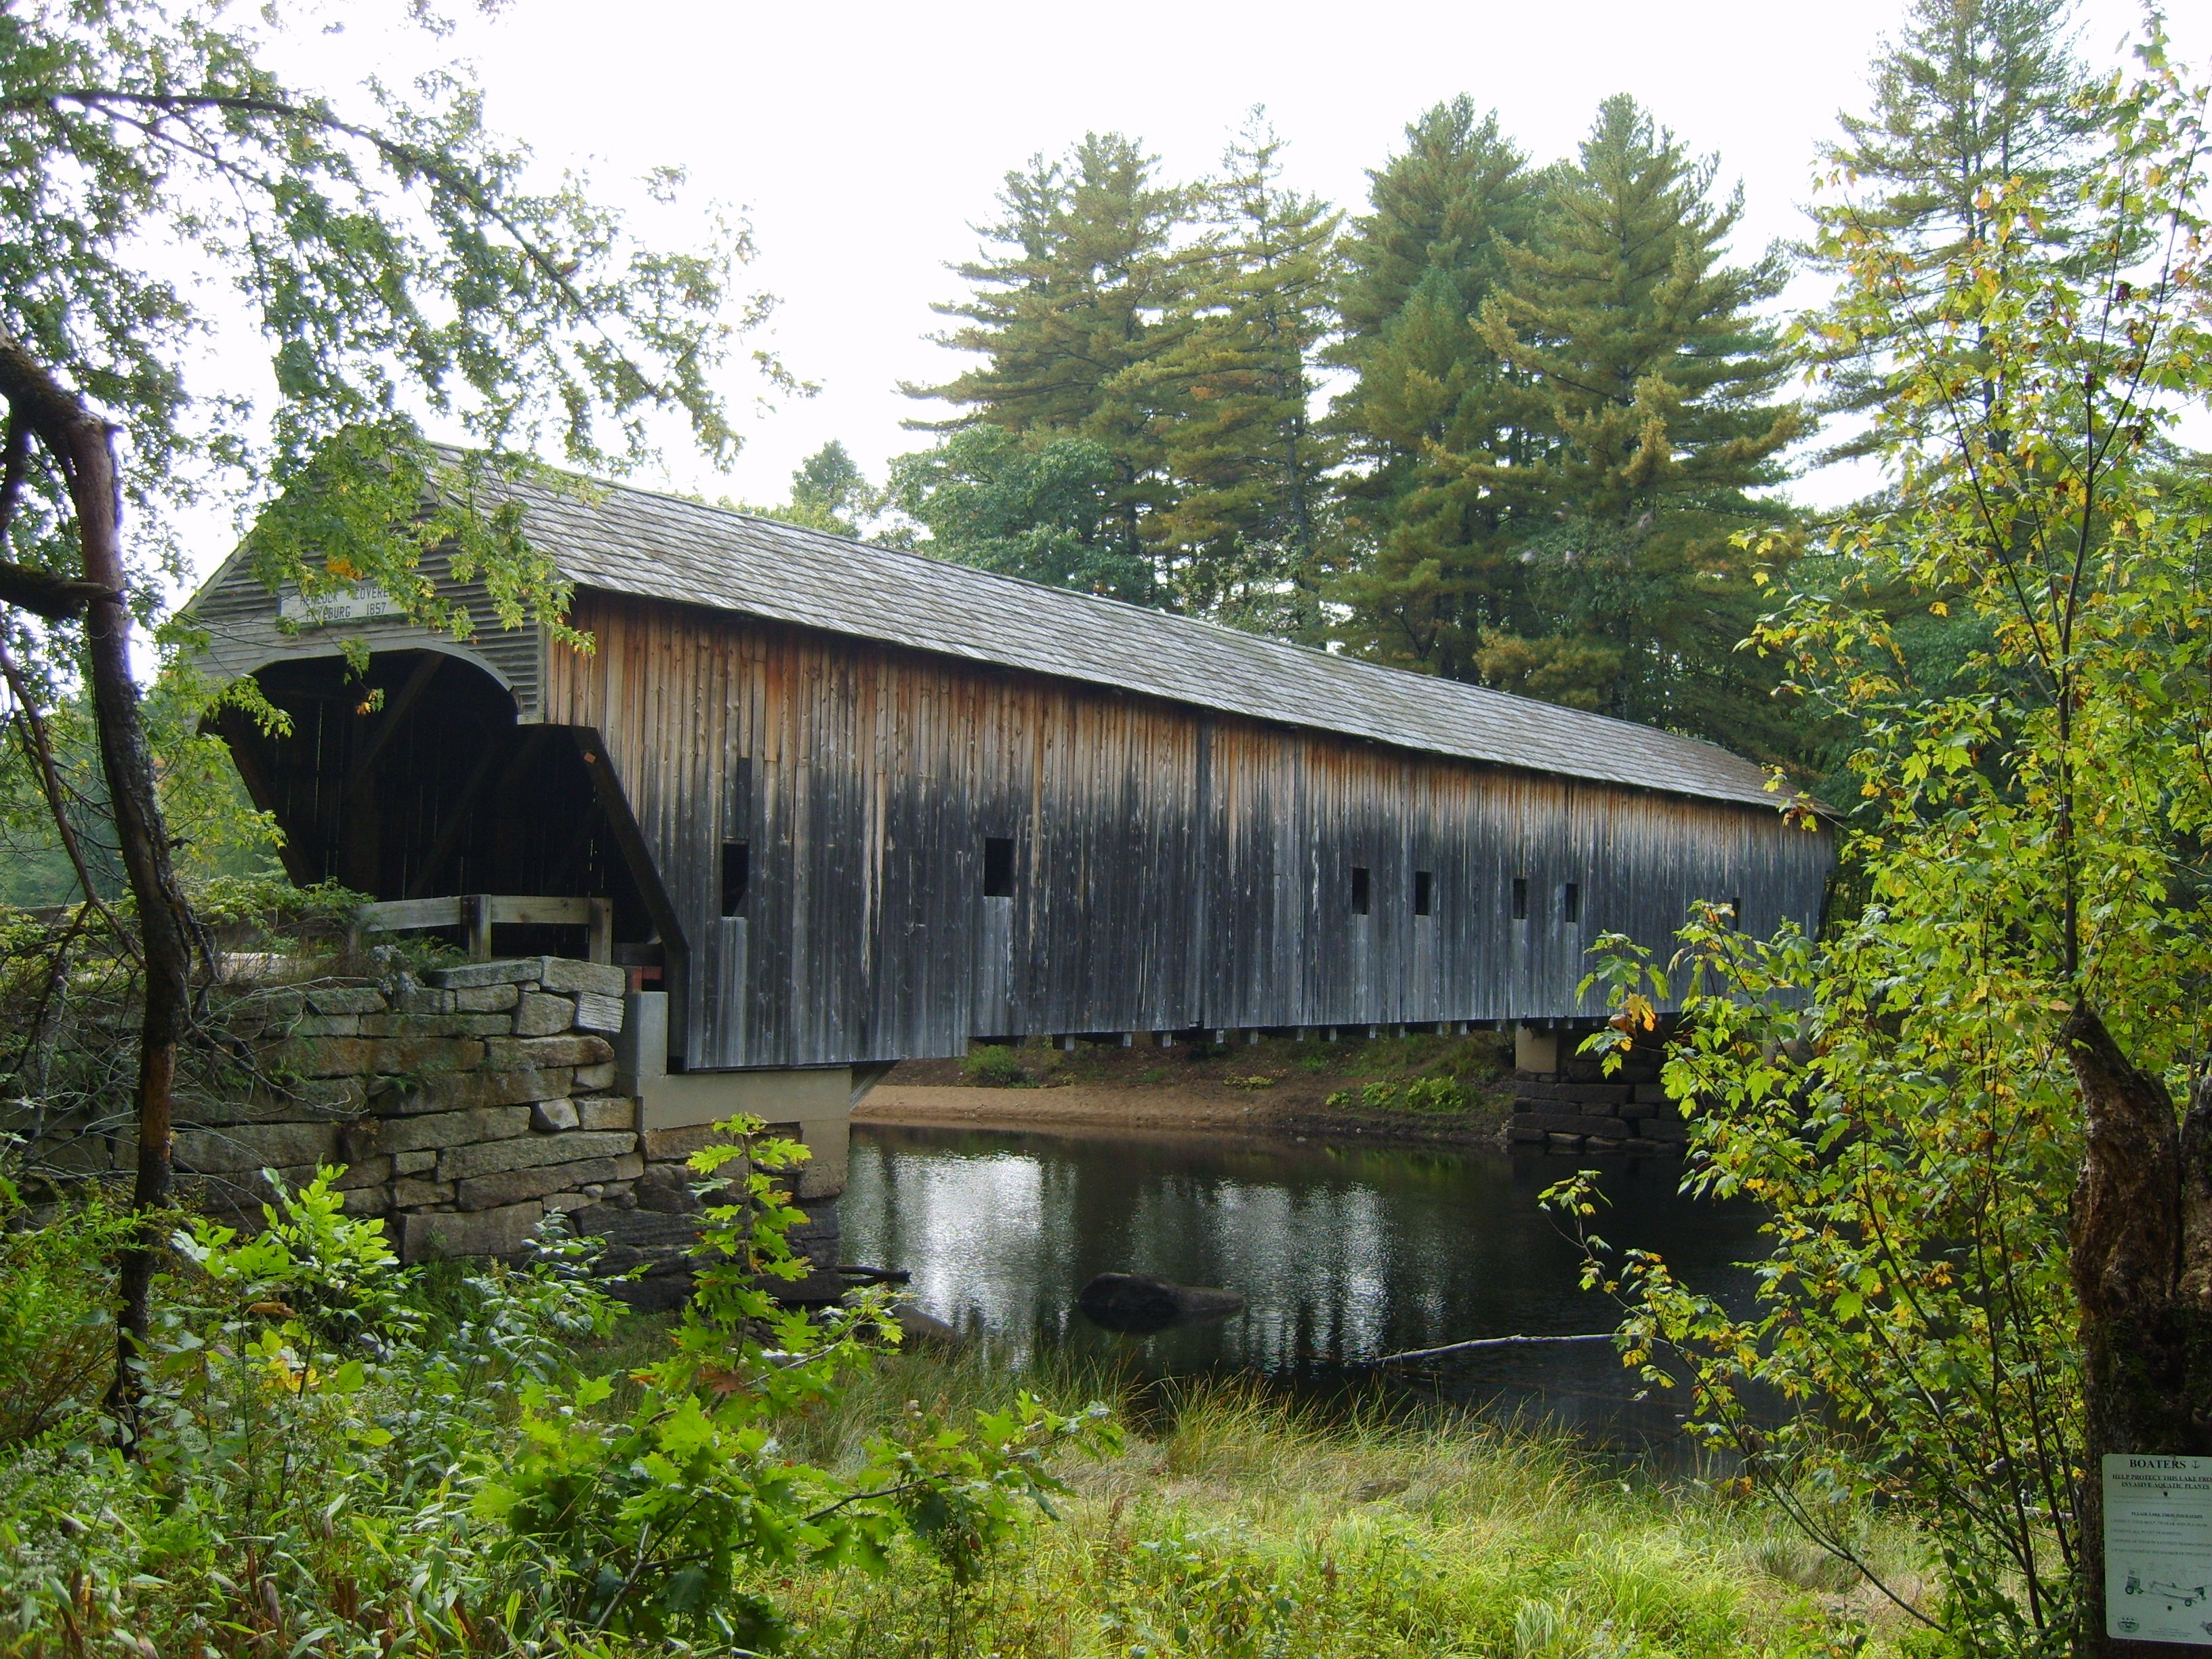 Covered Wooden Bridges B4bffee0177f1bc6e218eed5cb3bfb34